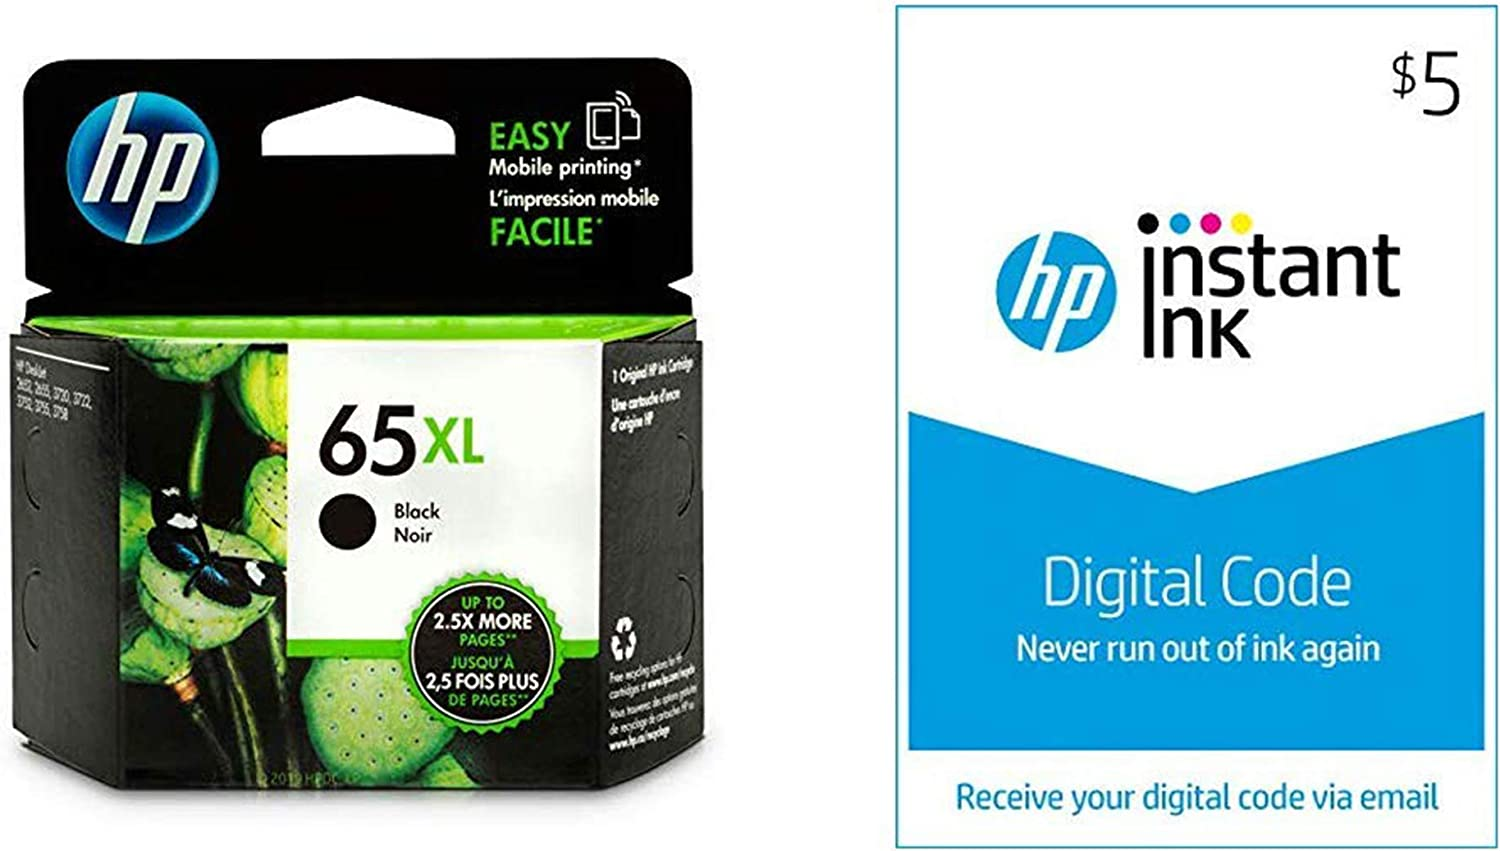 HP 65XL Ink | 1 Black Ink Cartridge | Plus $5 Instant Ink Prepaid Code